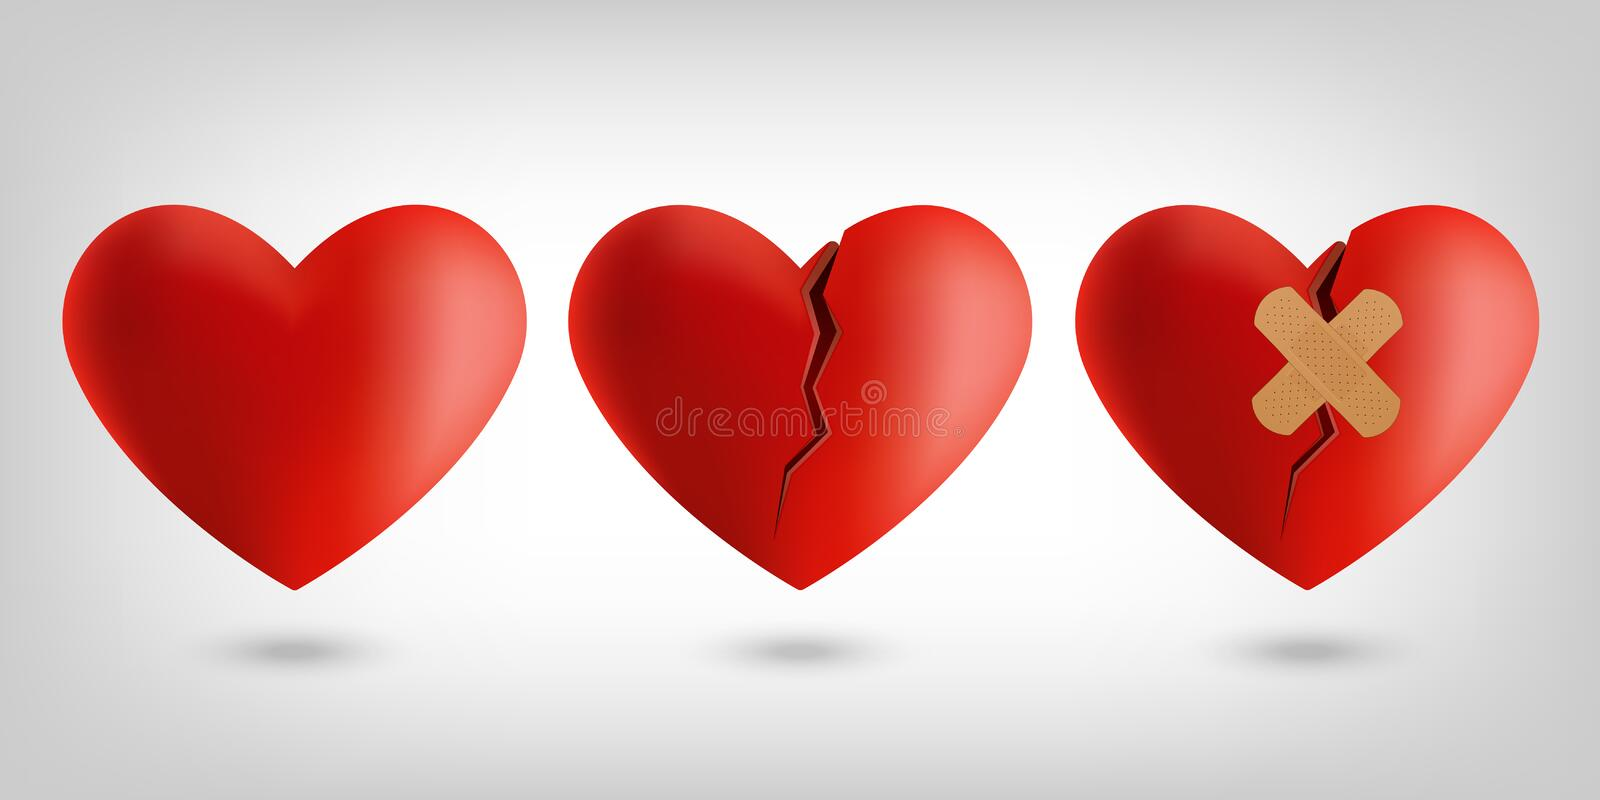 Heart icons vector illustration